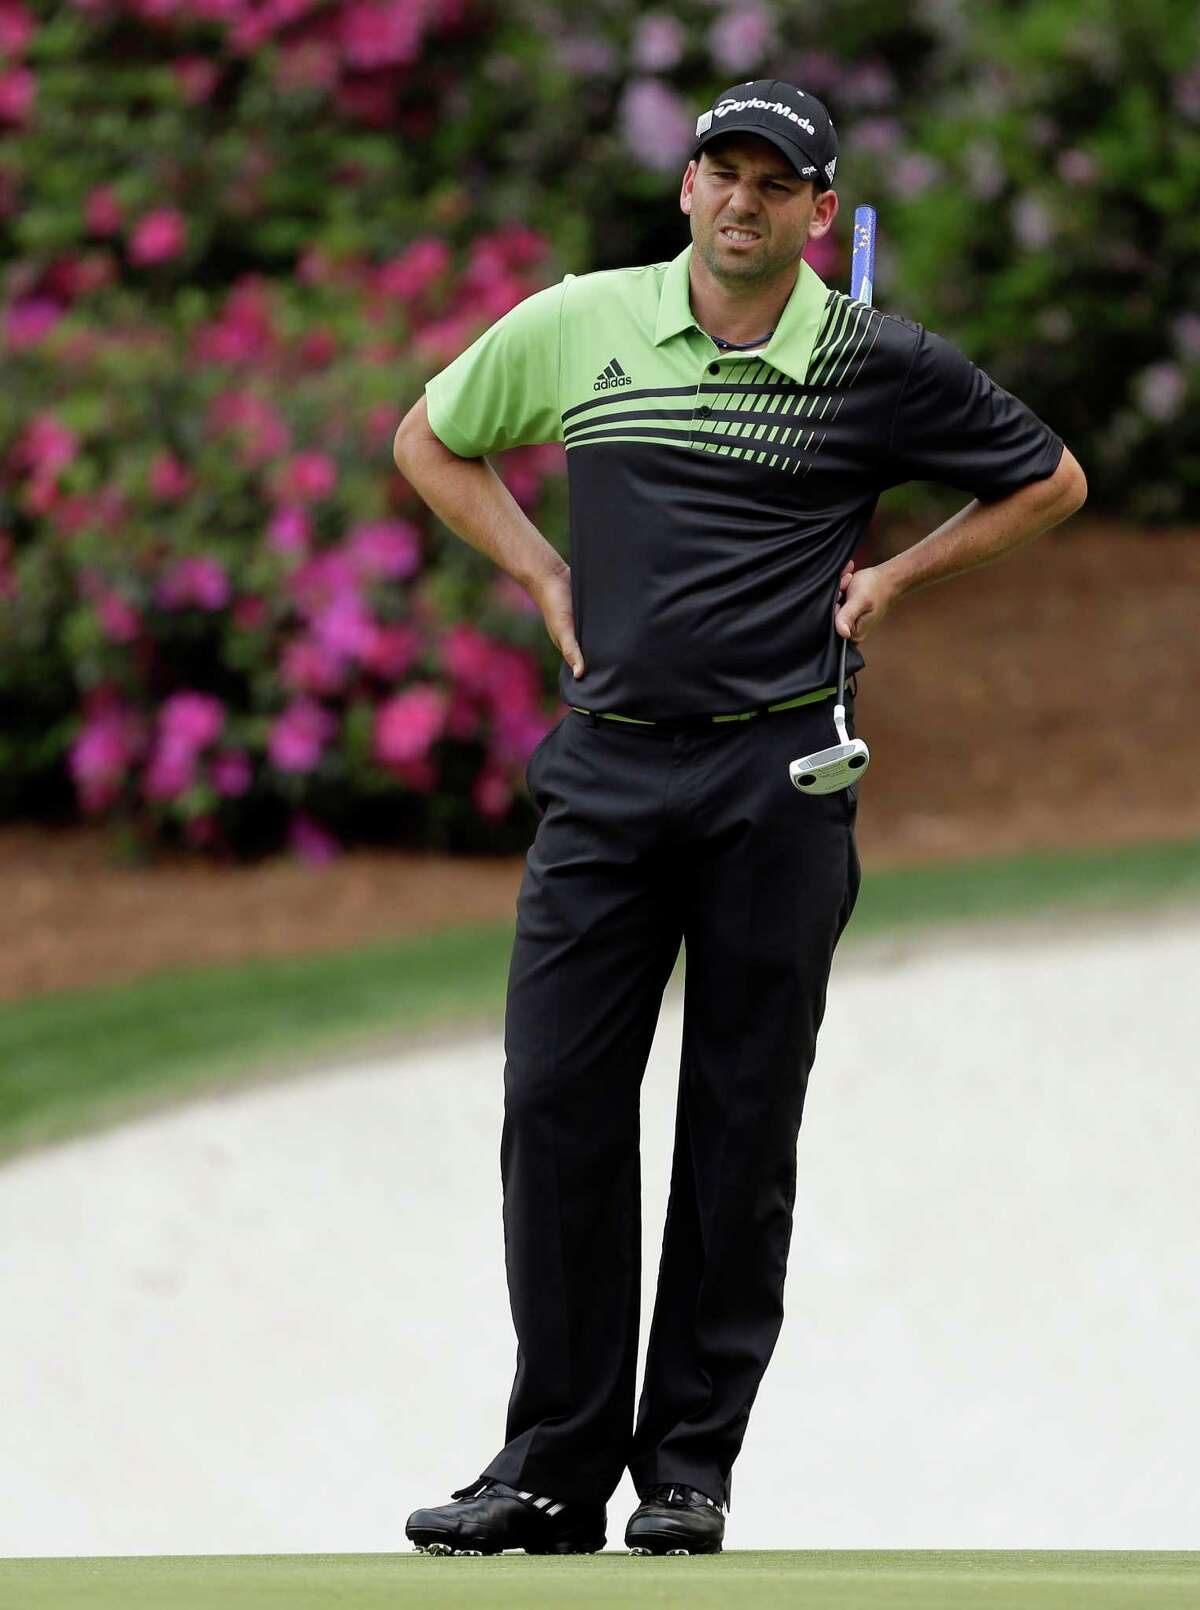 Sergio Garcia, of Spain, reacts to a missed putt on the 13th green during the first round of the Masters golf tournament Thursday, April 11, 2013, in Augusta, Ga.